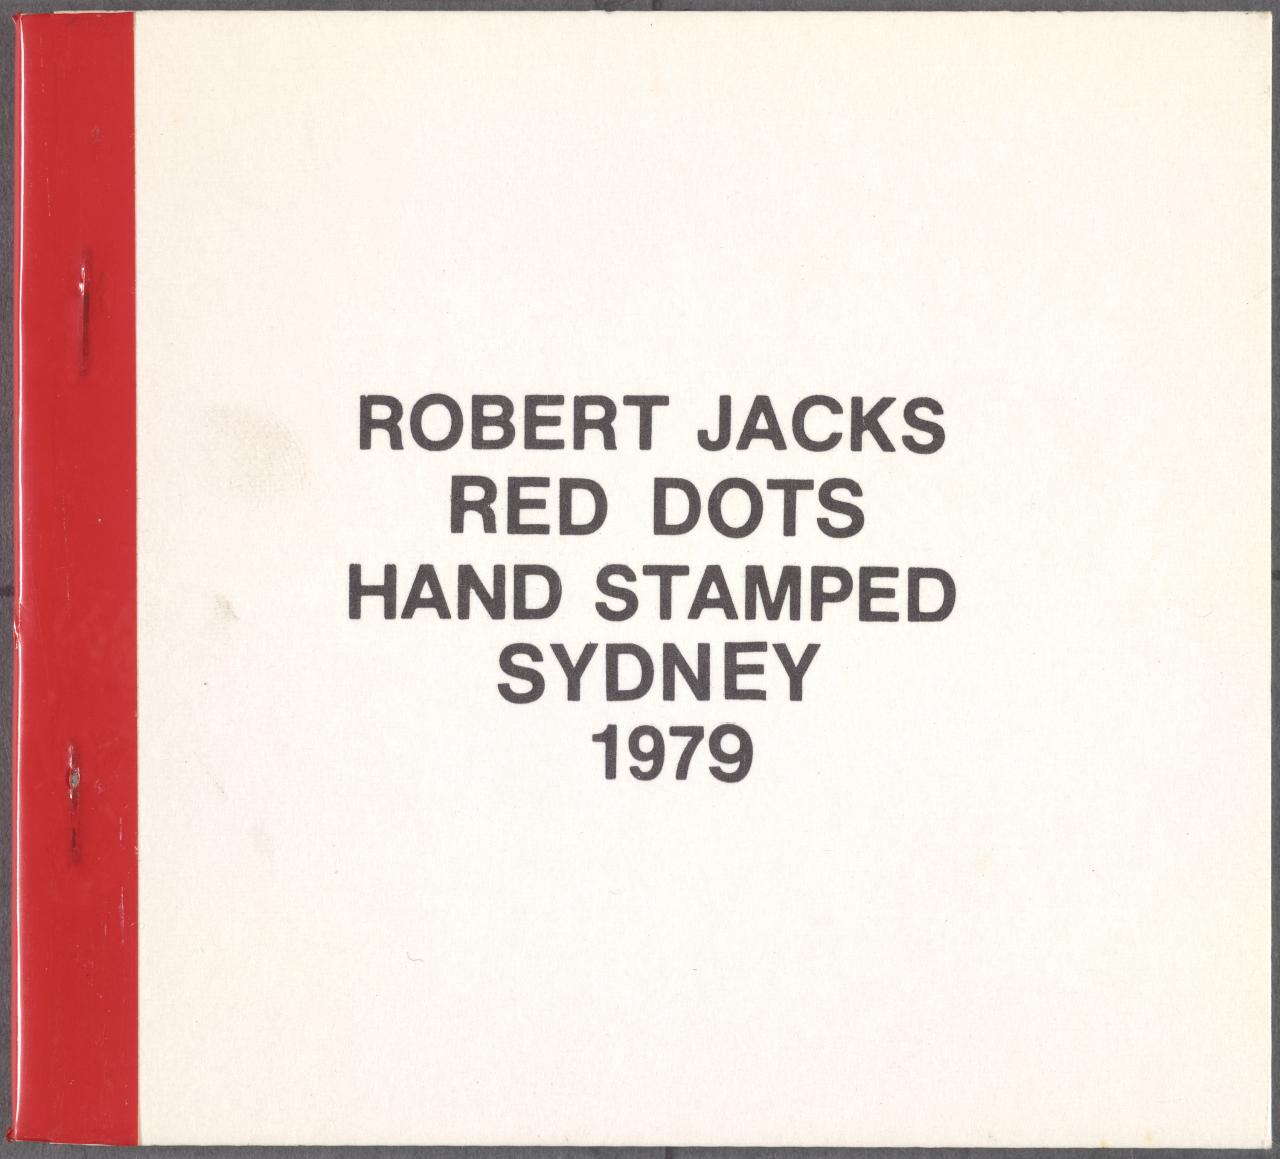 Red dots hand stamped Sydney 1979